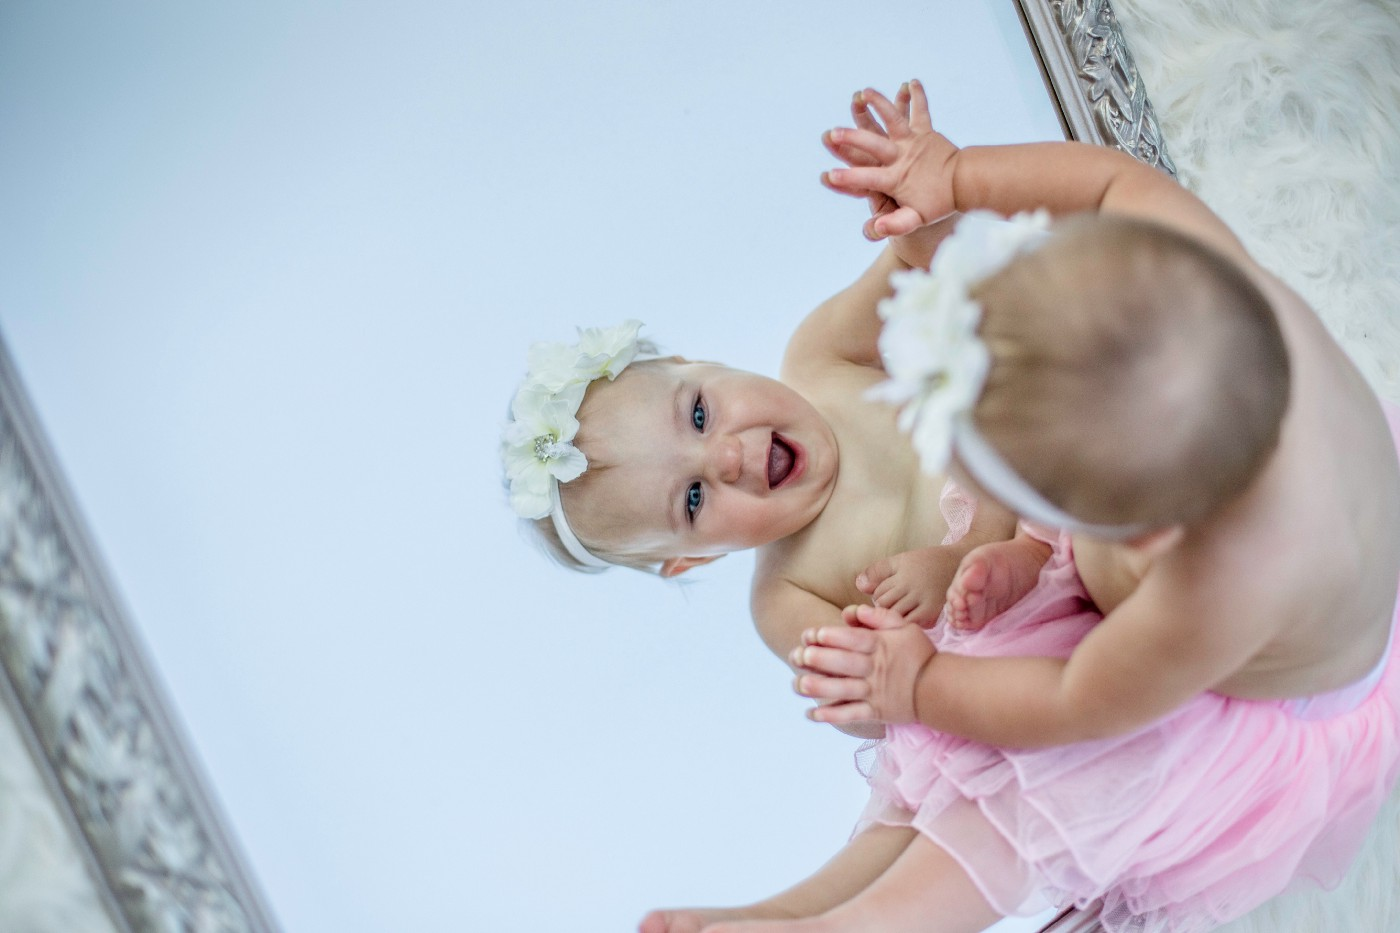 A baby dressed in a pink tutu and a flowery head-band delighting in her reflection in the mirror.